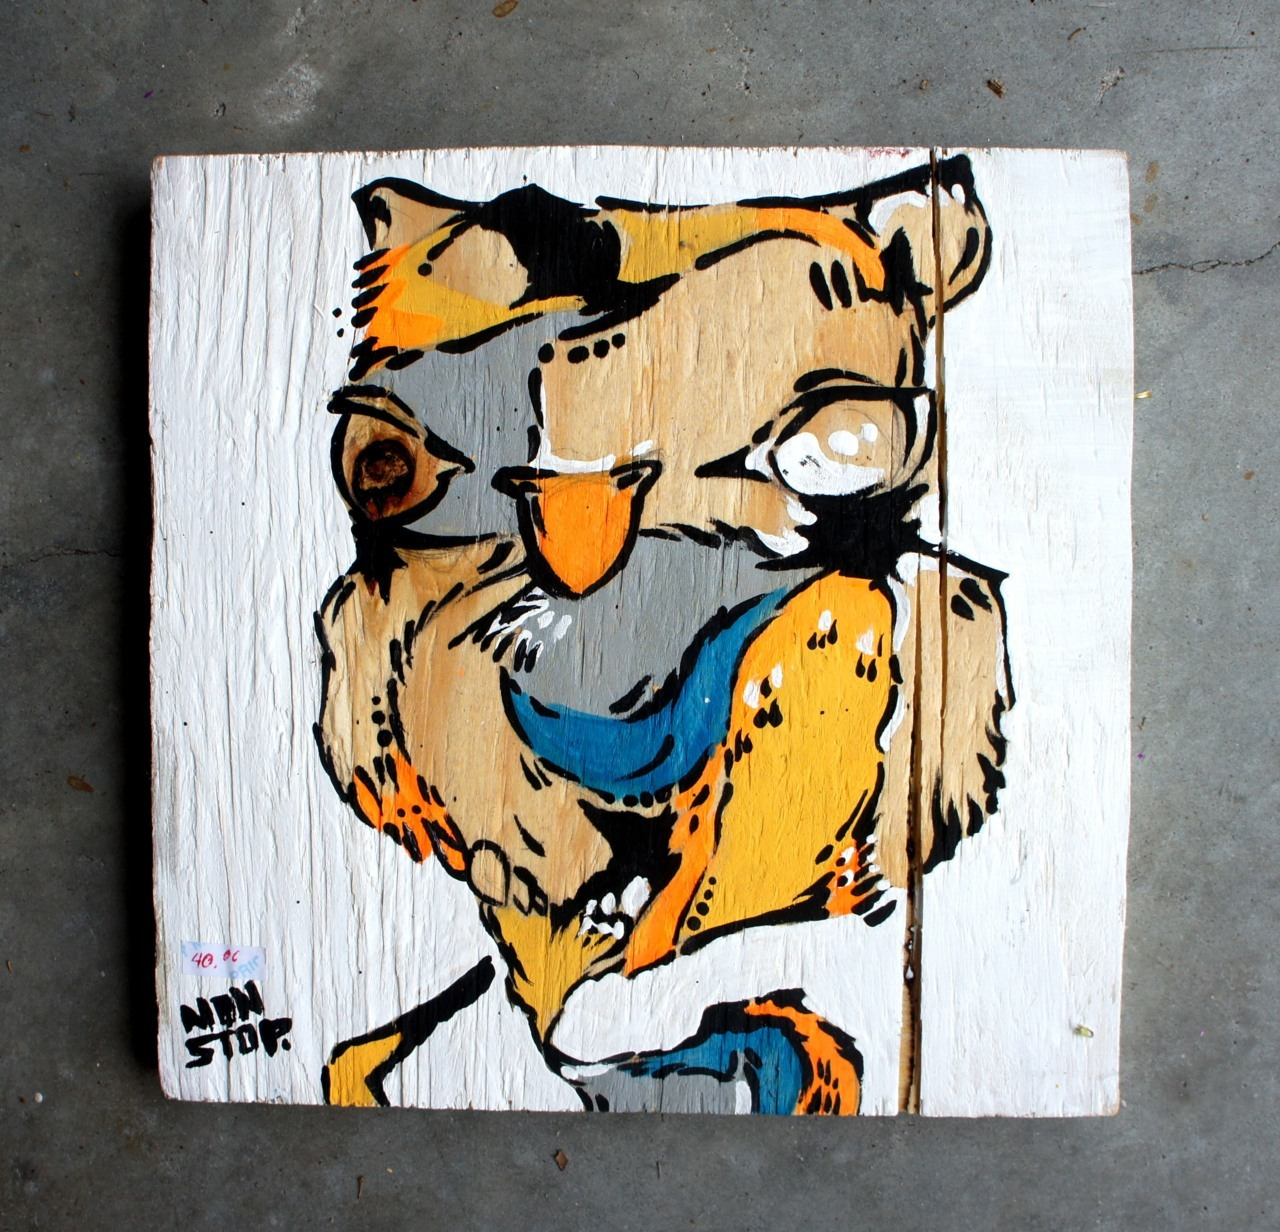 iamnonstop:  wooden owls:] for sale : if interested please email me at svet25_86@yahoo.com or if interested to follow and see more of my artwork heres my  facebook and have a nice creative day/night!